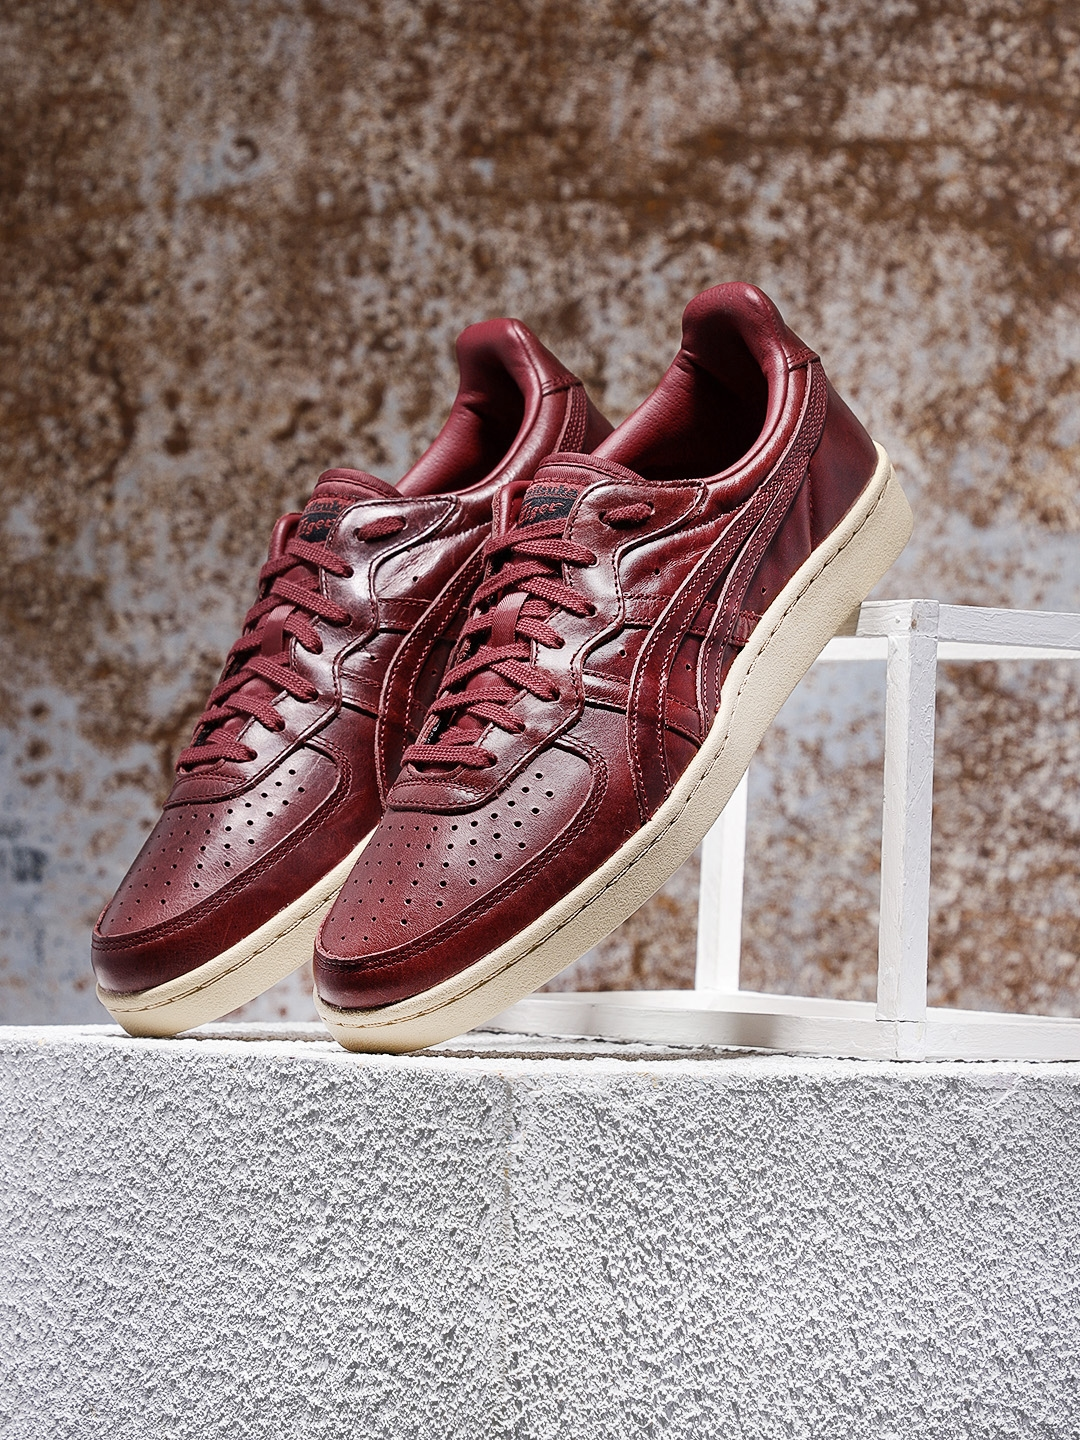 Buy Onitsuka Tiger Unisex GSM Burgundy Sneakers - Casual Shoes for ... 09433b78e